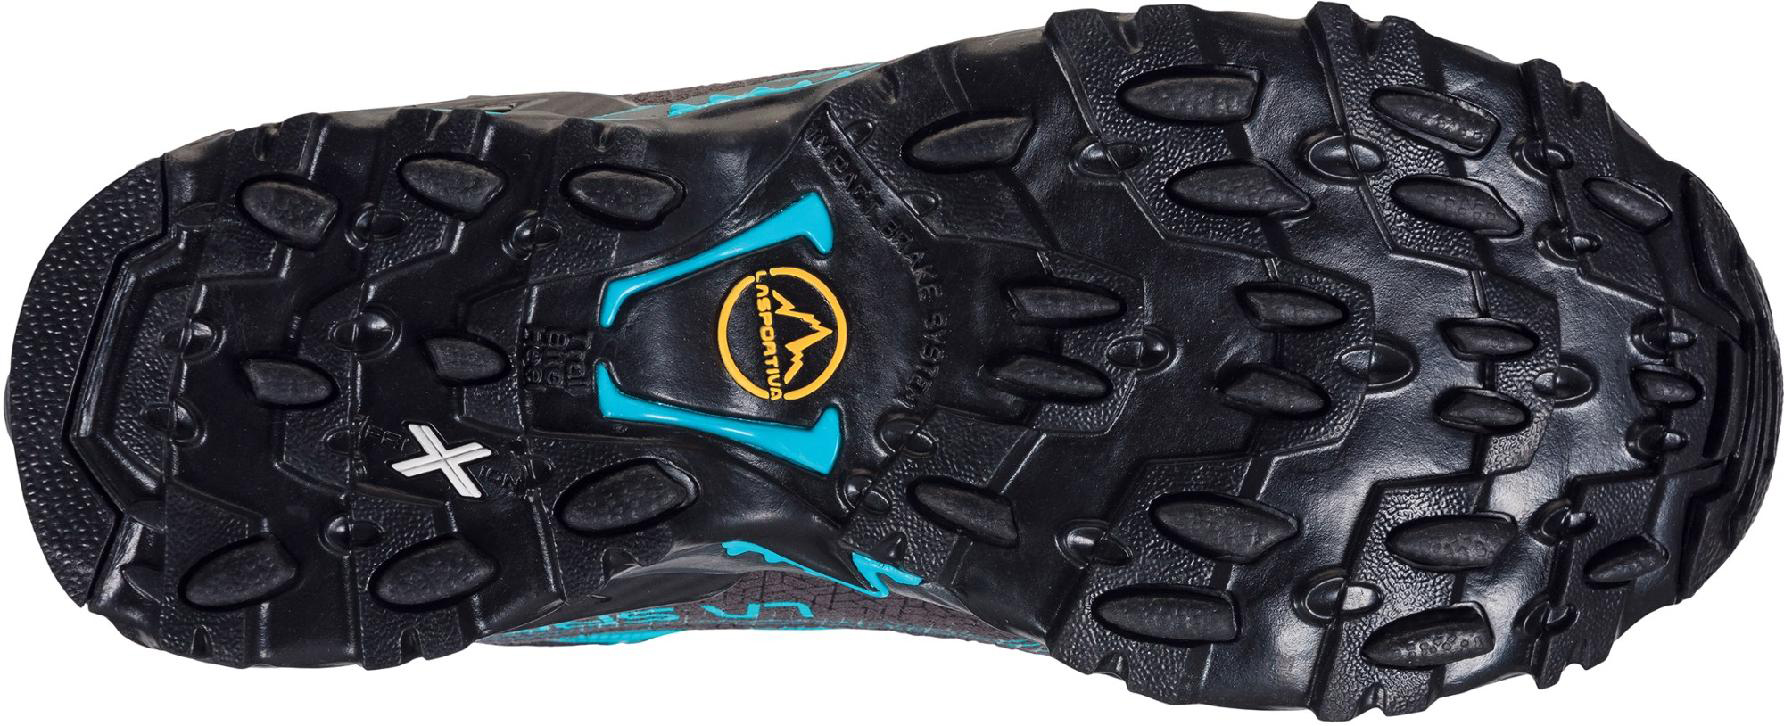 La Sportiva Ultra Raptor II Mid GTX Hiking Boot sole